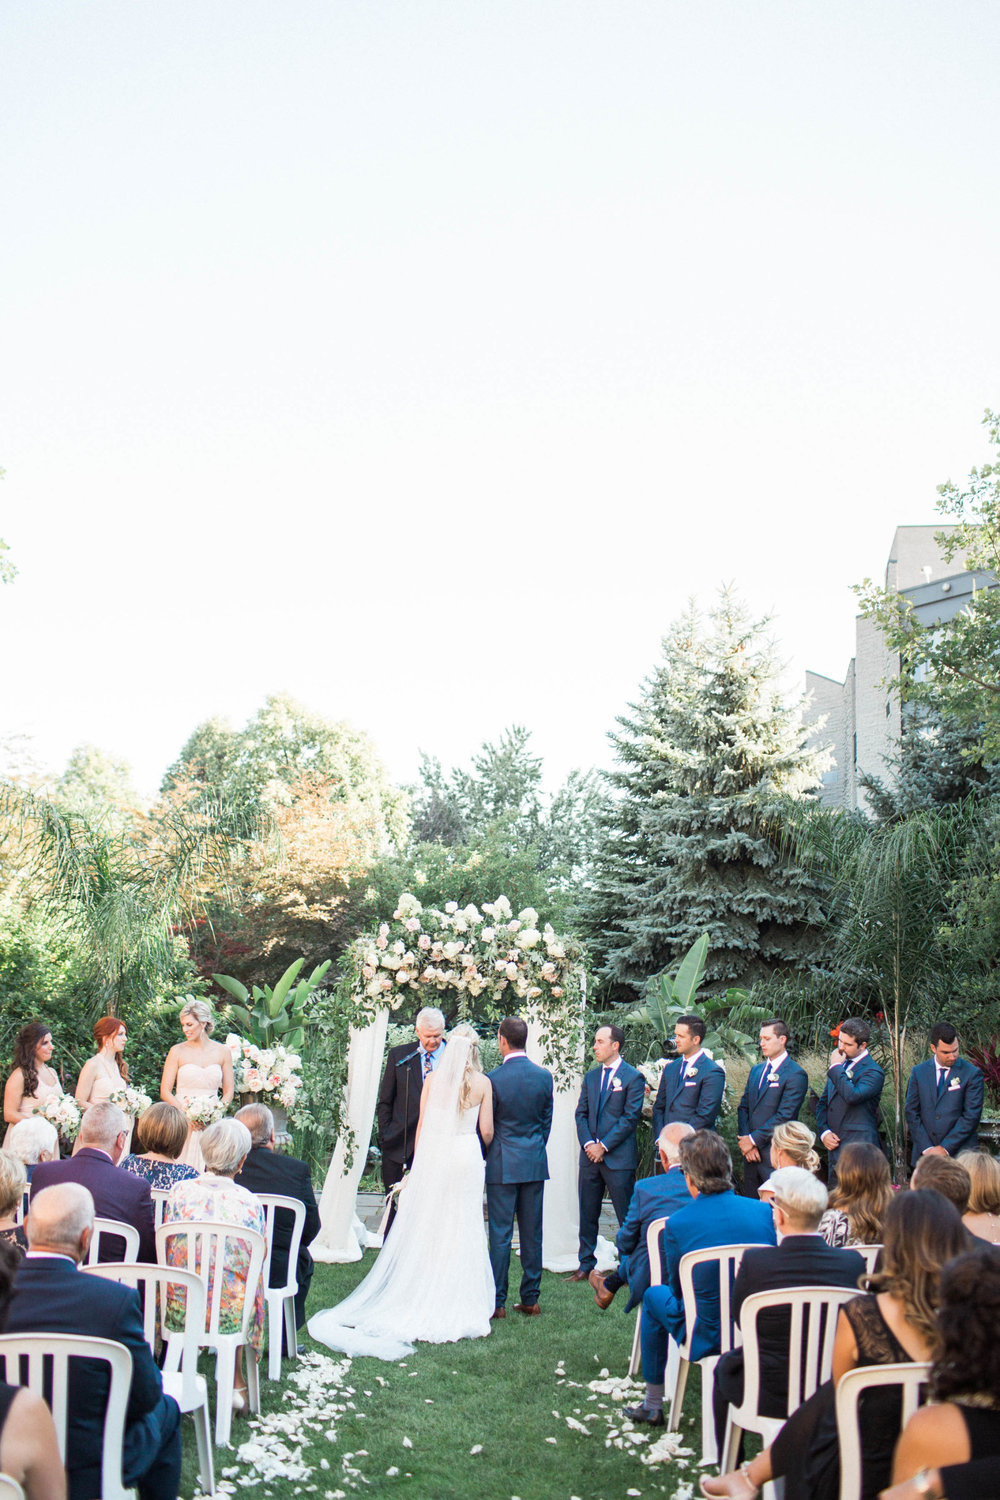 Niagara Wedding White Oaks Garden Nataschia Wielink Photography Arbour